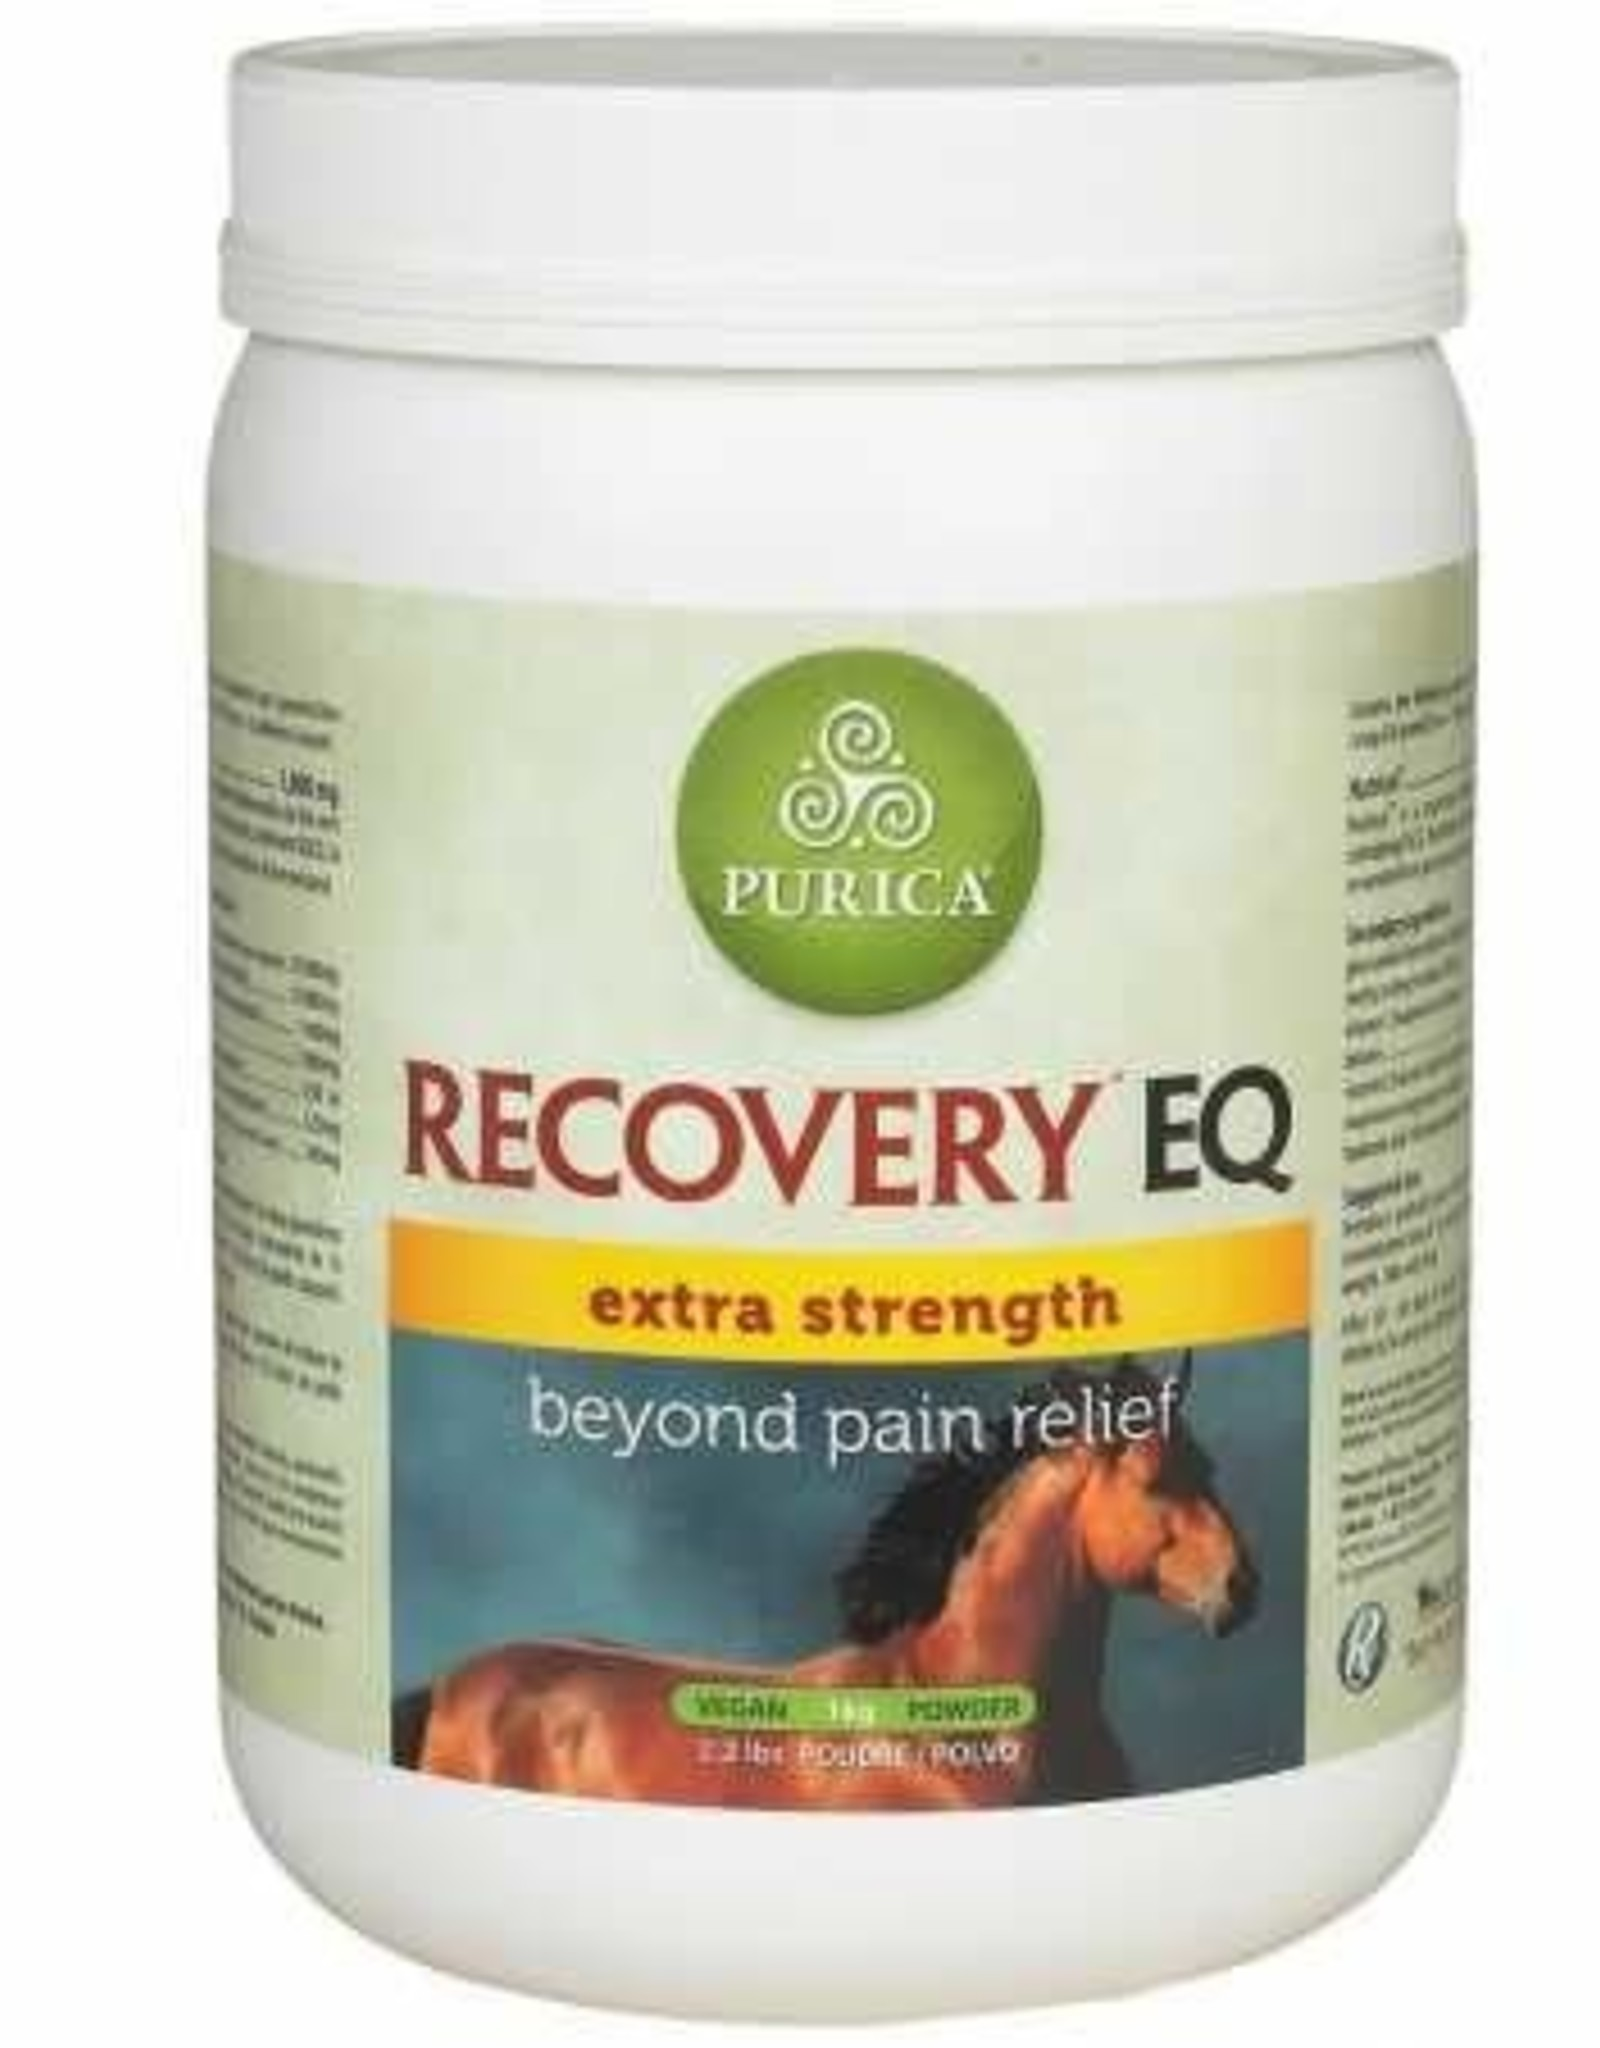 Purica Purica Recovery EQ EXTRA Strength